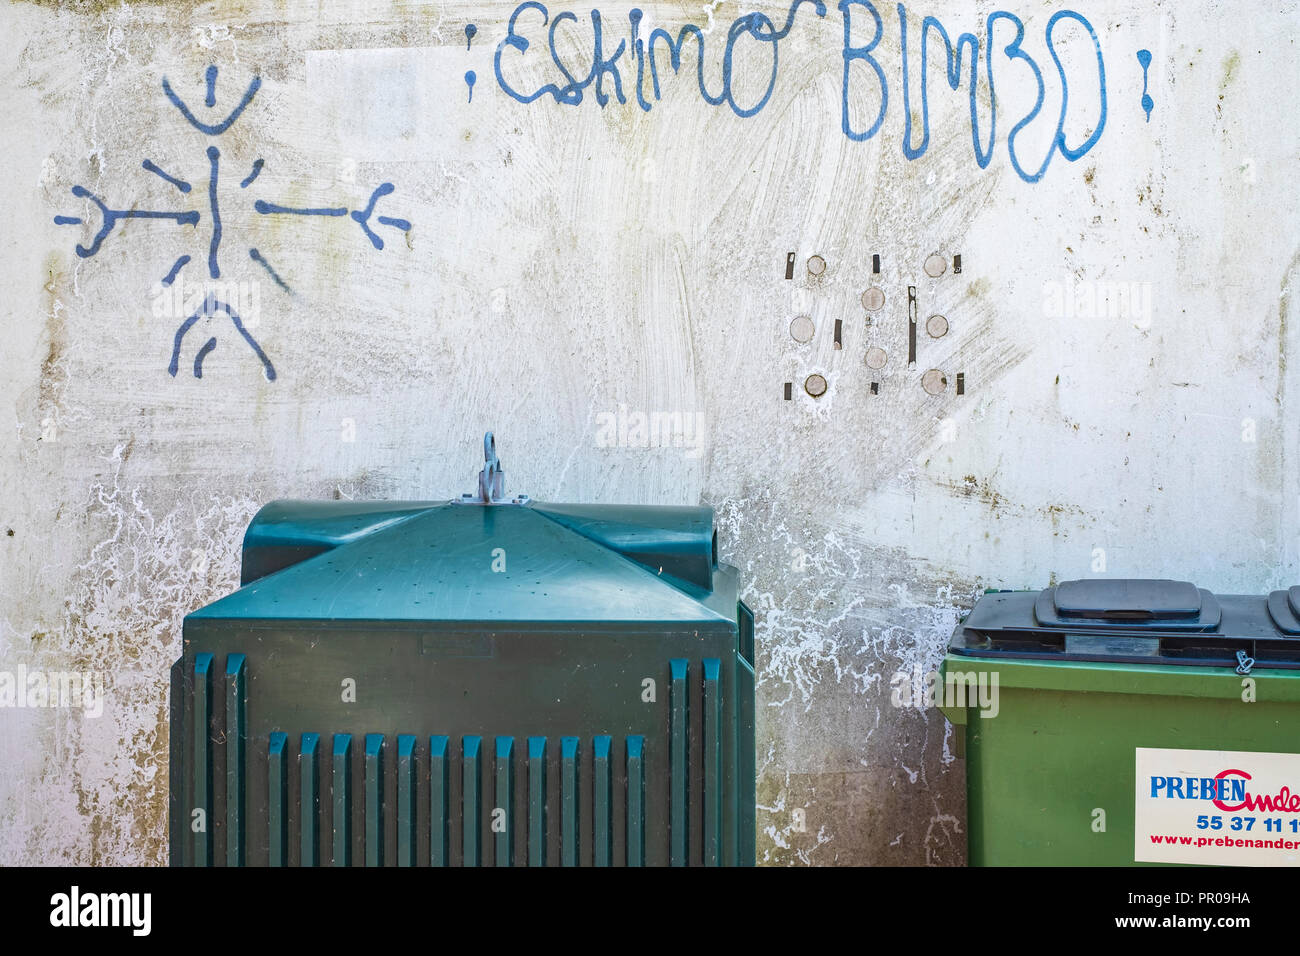 Garbage containers and graffito saying ESKIMO BIMBO, Harbolle Havn on Moen Island, Denmark, Scandinavia, Europe. - Stock Image